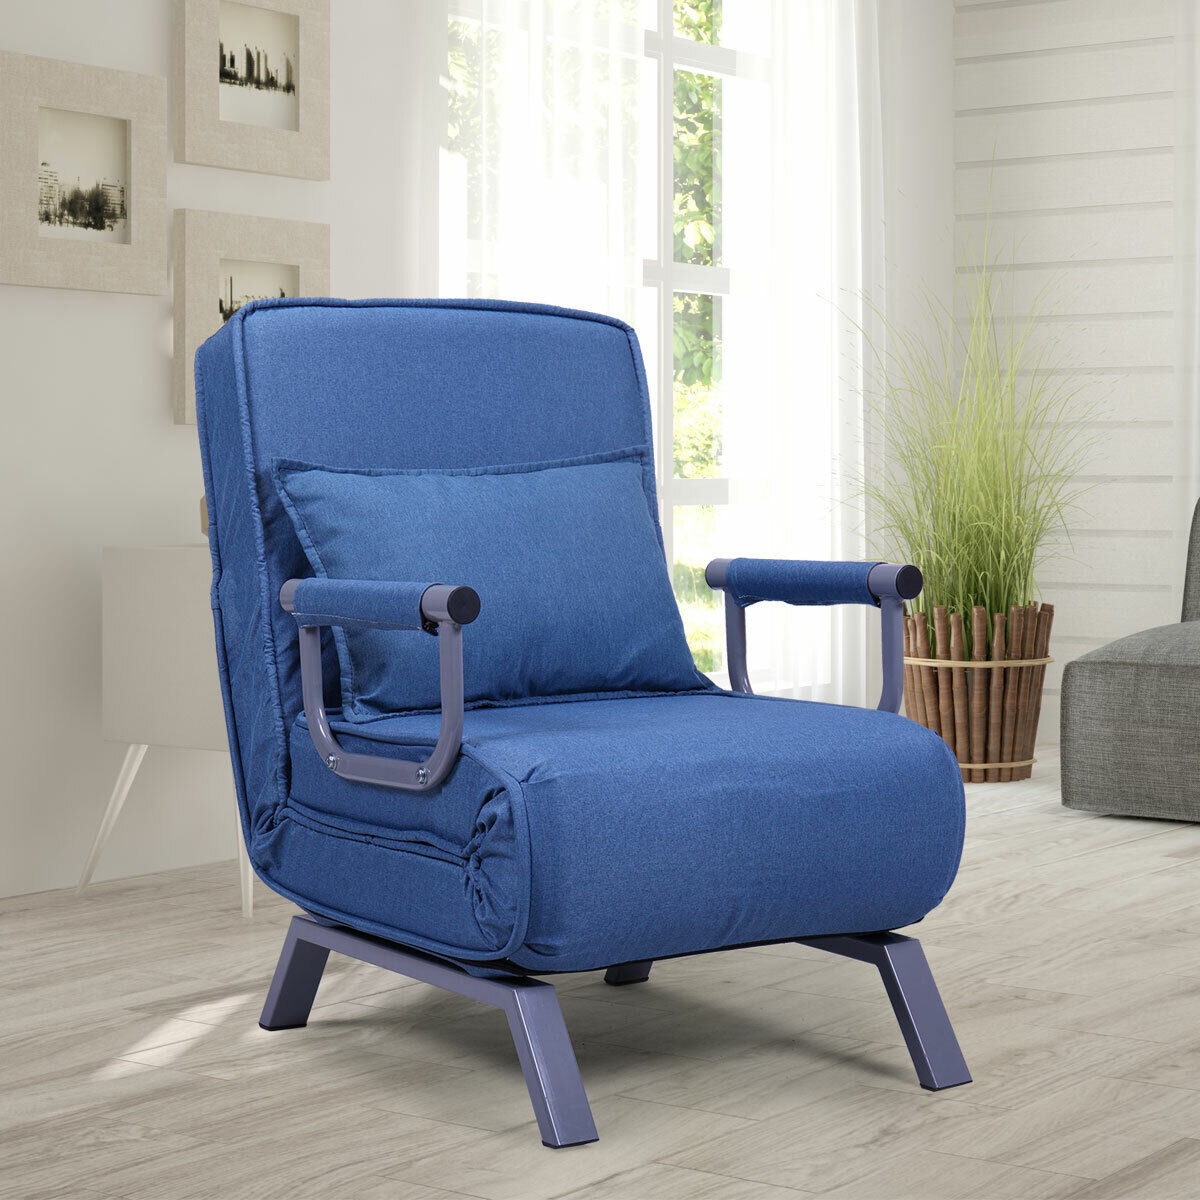 Blue Sofa Bed Folding Arm Chair Sleeper, 5 Position Recliner